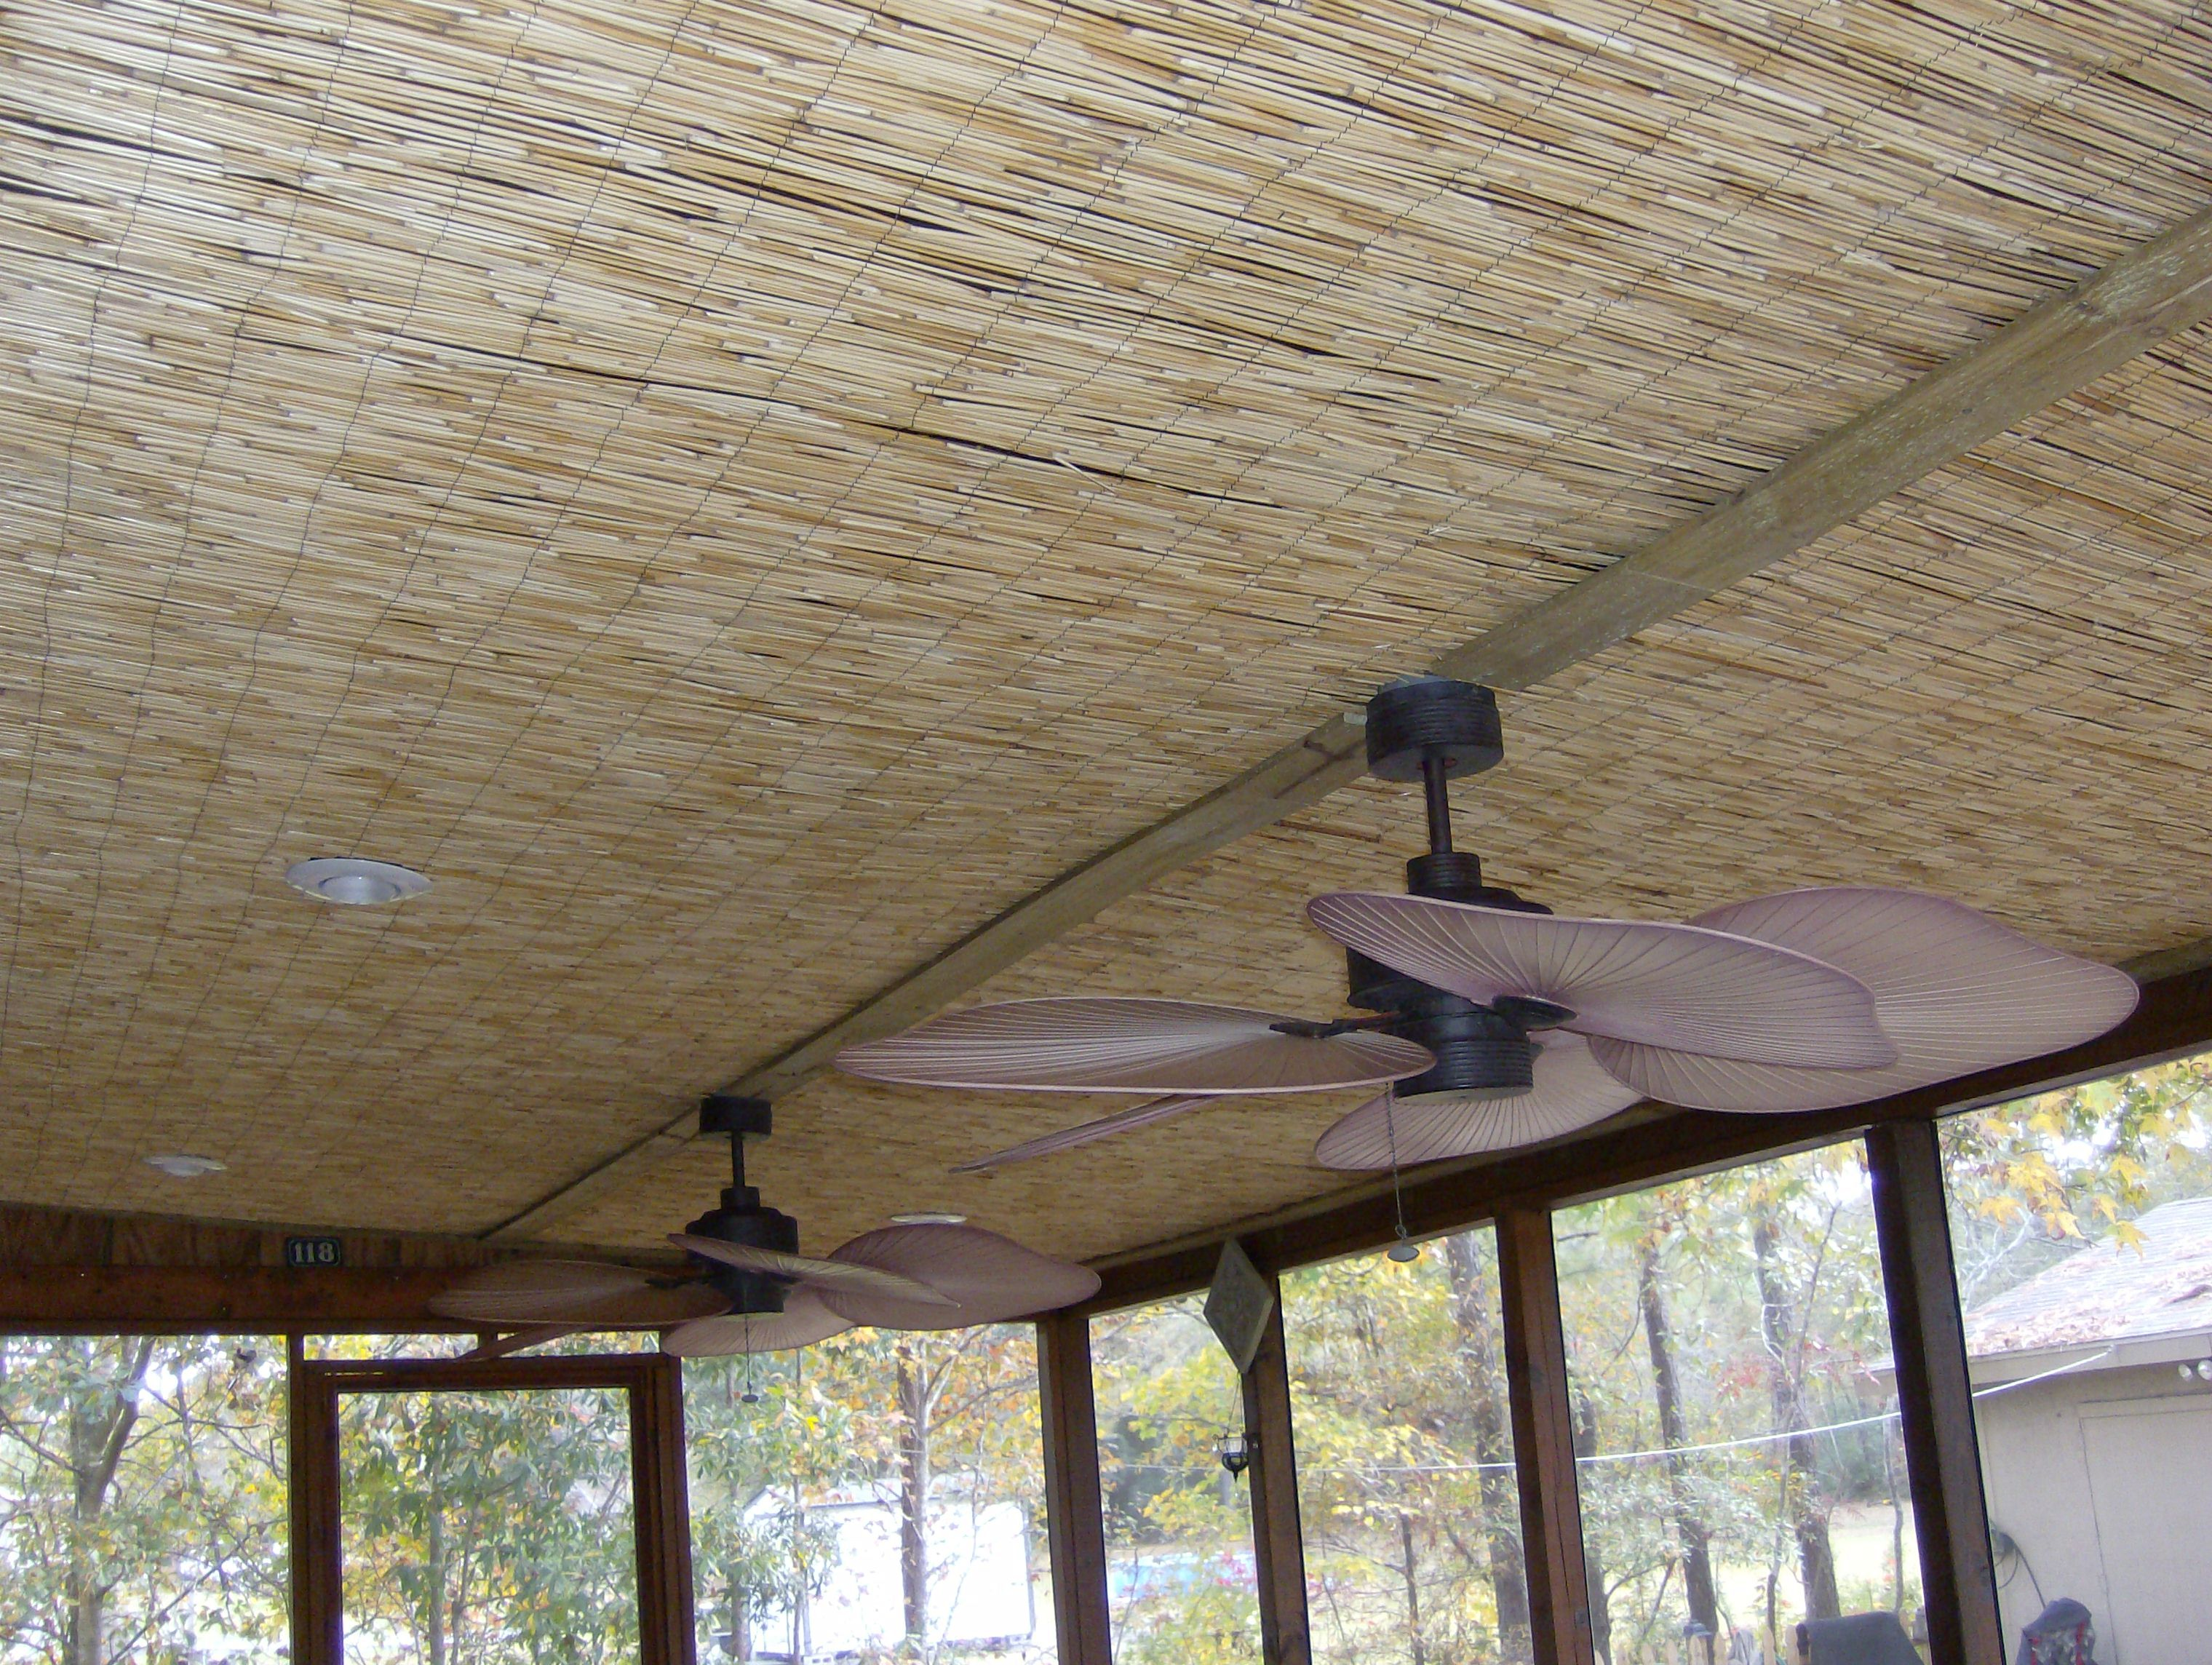 looking for cheap ideas to finish a garage ceiling for my future